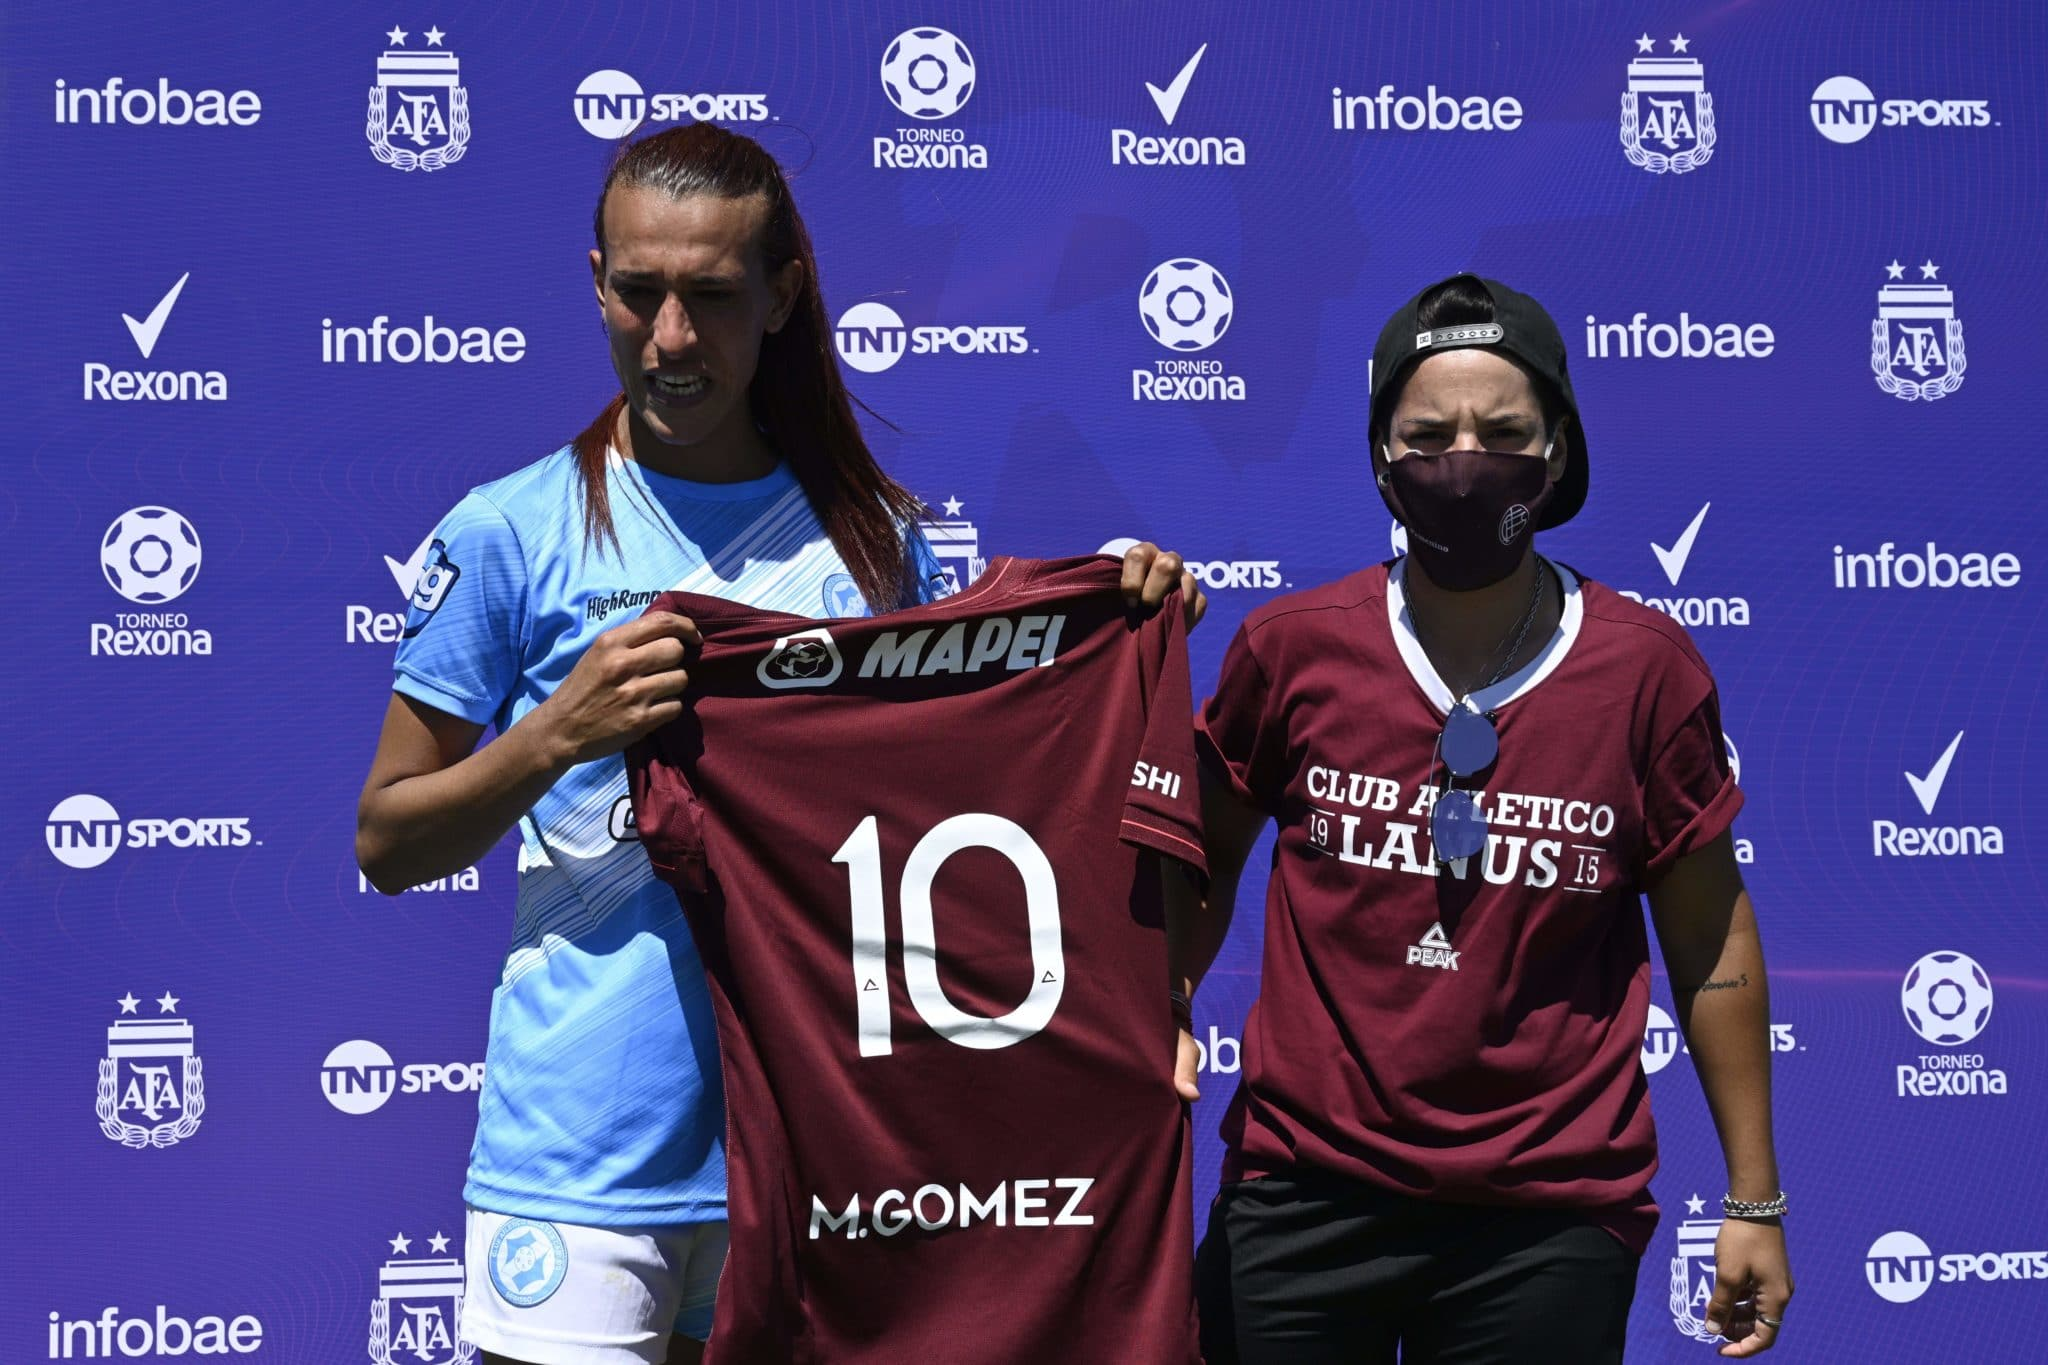 Mara Gómez poses with a jersey of Lanus with her name on it given as present after an Argentina first division female football match